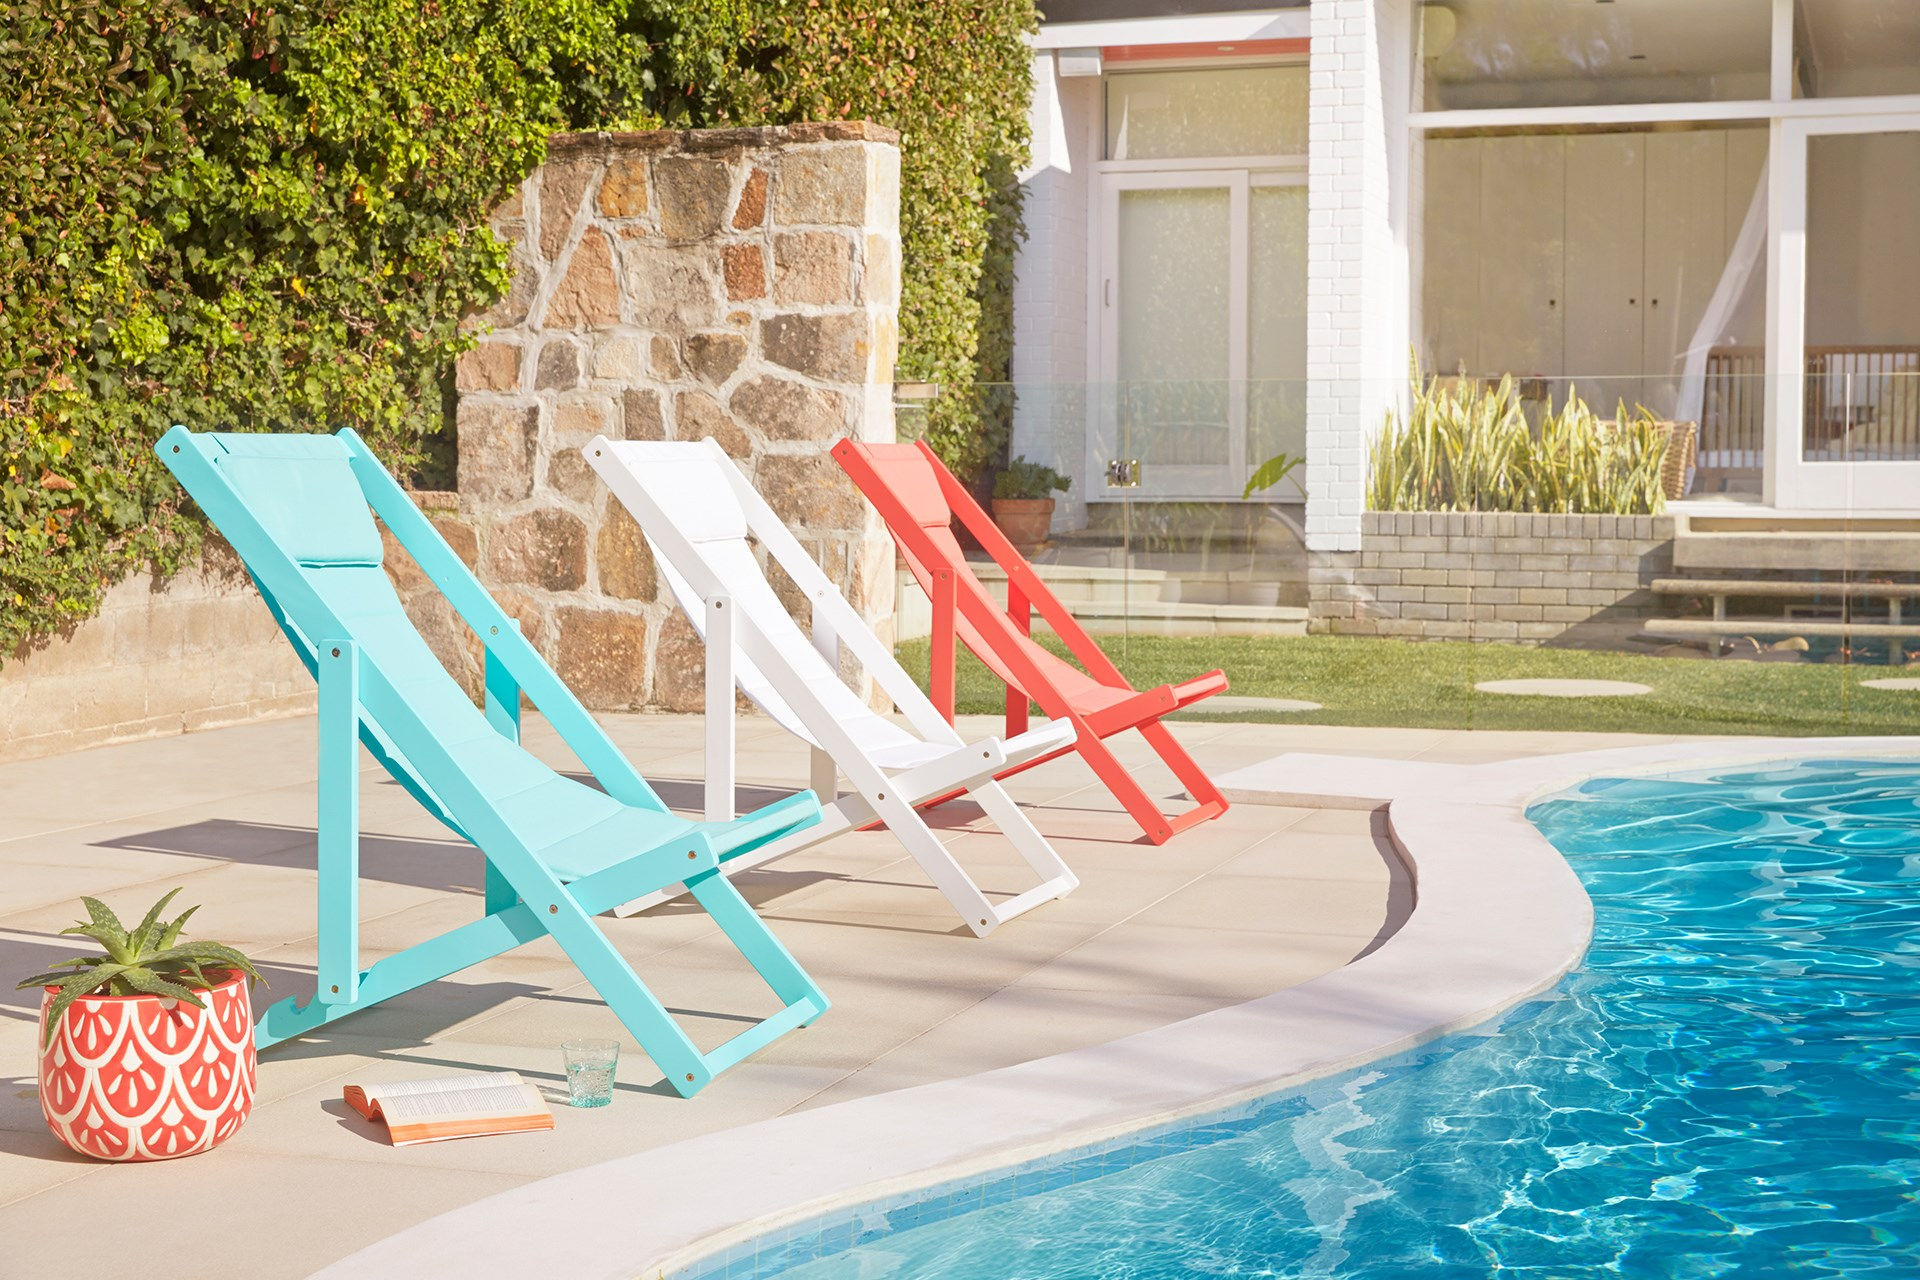 "The sun is shining and the pool is beckoning! [Make a splash](http://www.homestolove.com.au/pool-furniture-and-accessoires-2477/|target=""_blank"") during the warmer months with novelty pool toys, vibrant outdoor cushions and durable furniture."